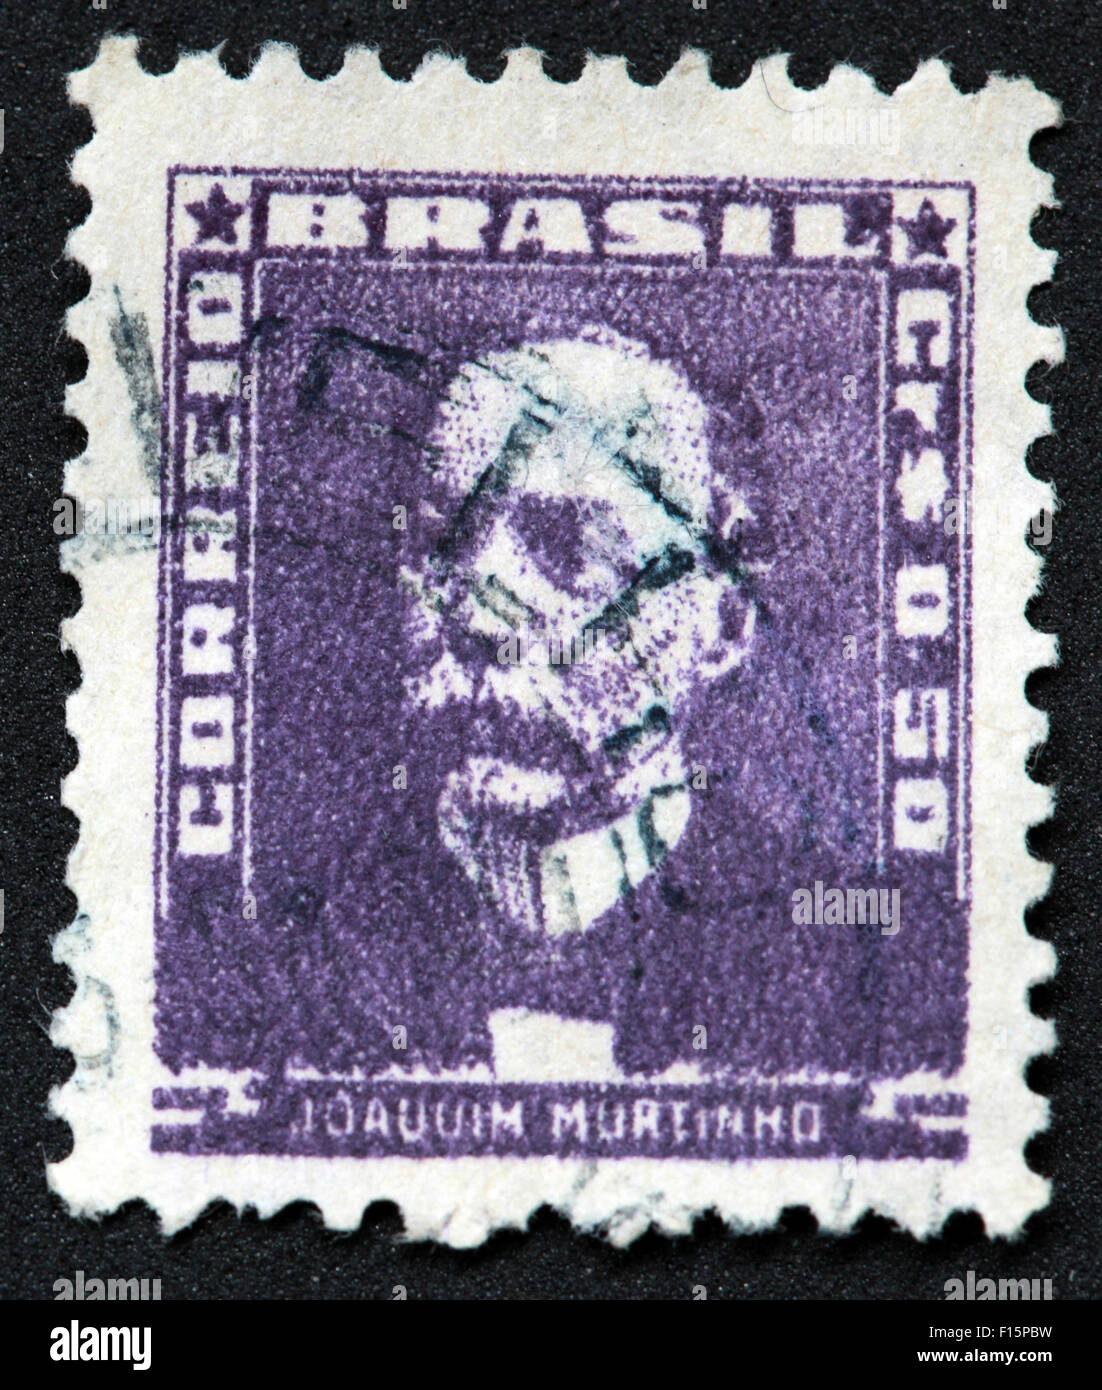 Brazil 50 Joauuim Murtinno Correio purple stamp - Stock Image